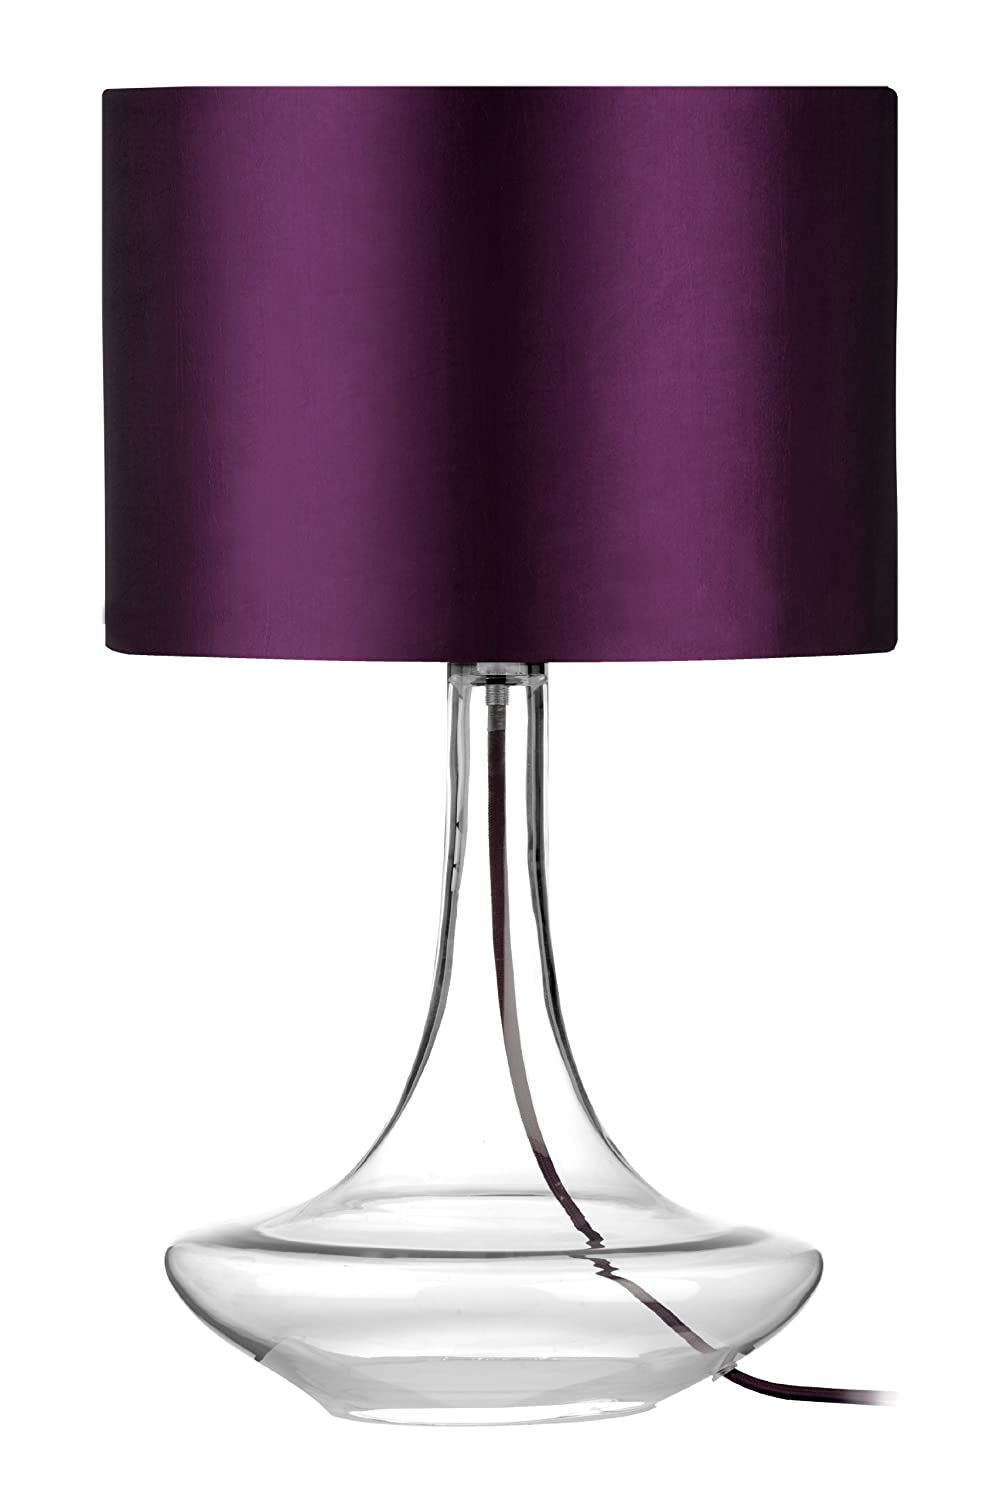 Premier housewares curved glass table lamp hot pink amazon premier housewares curved glass table lamp hot pink amazon lighting mozeypictures Gallery